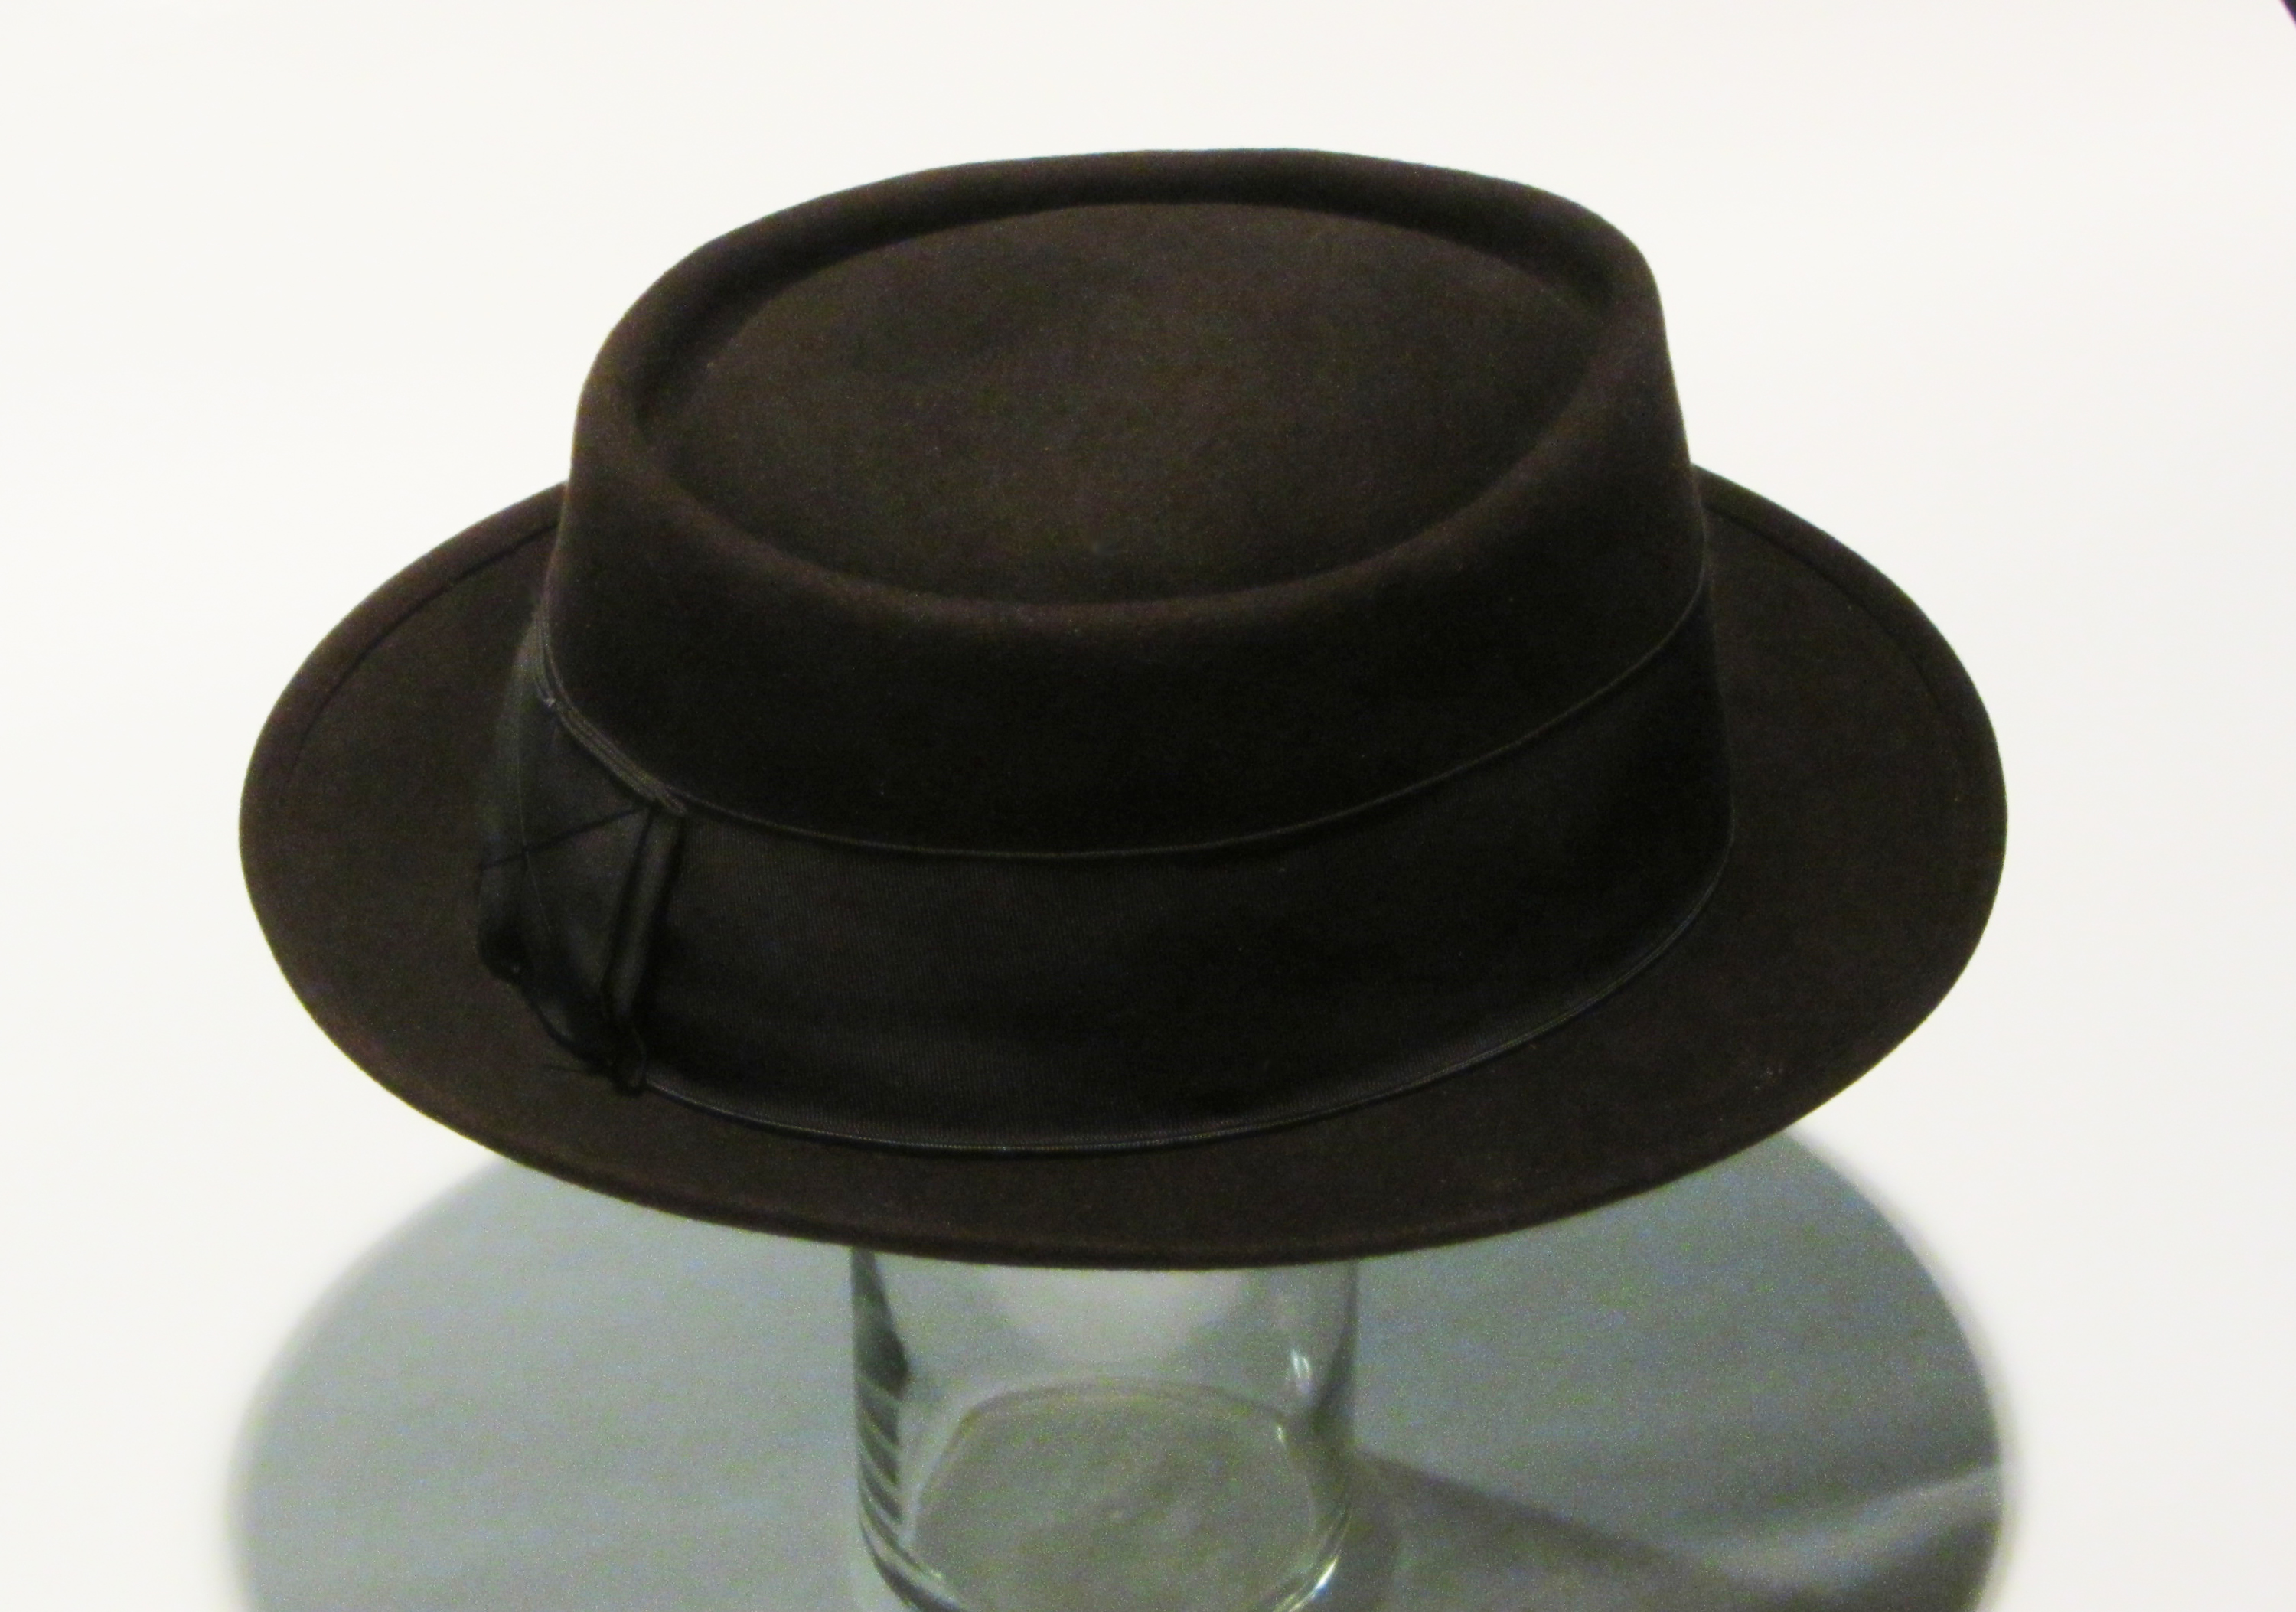 Pork pie hat - Wikipedia 032a7efc113